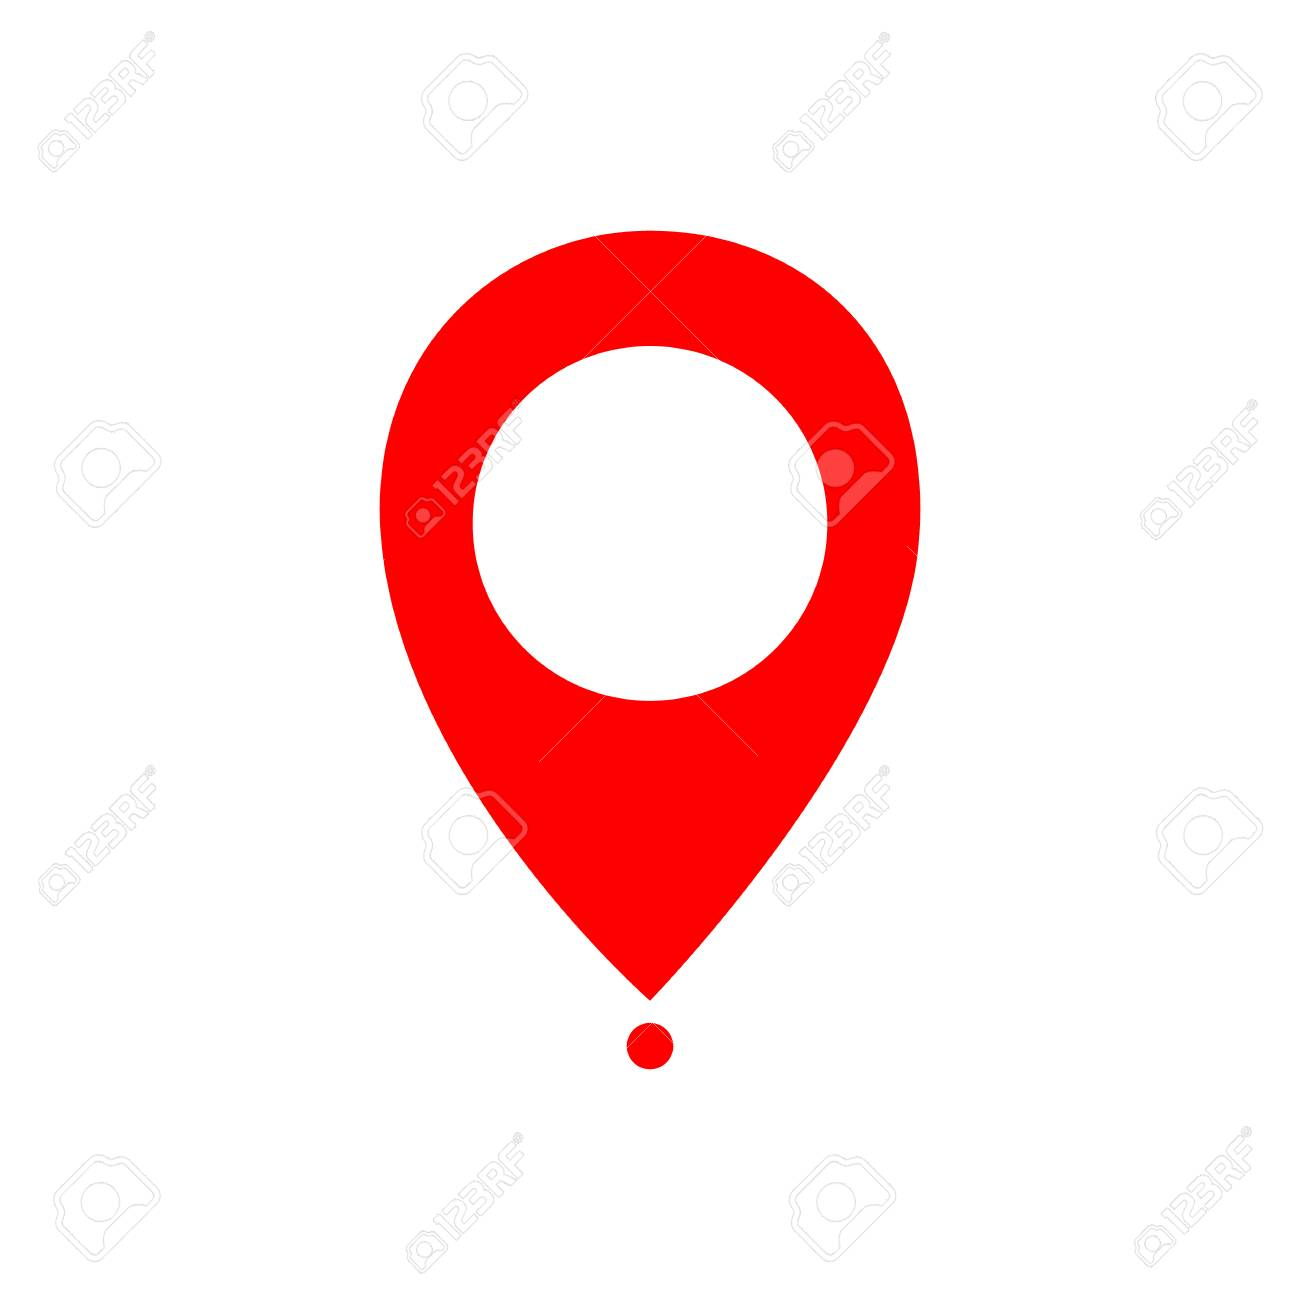 Maps pin  Location map icon  Location pin  Pin icon vector